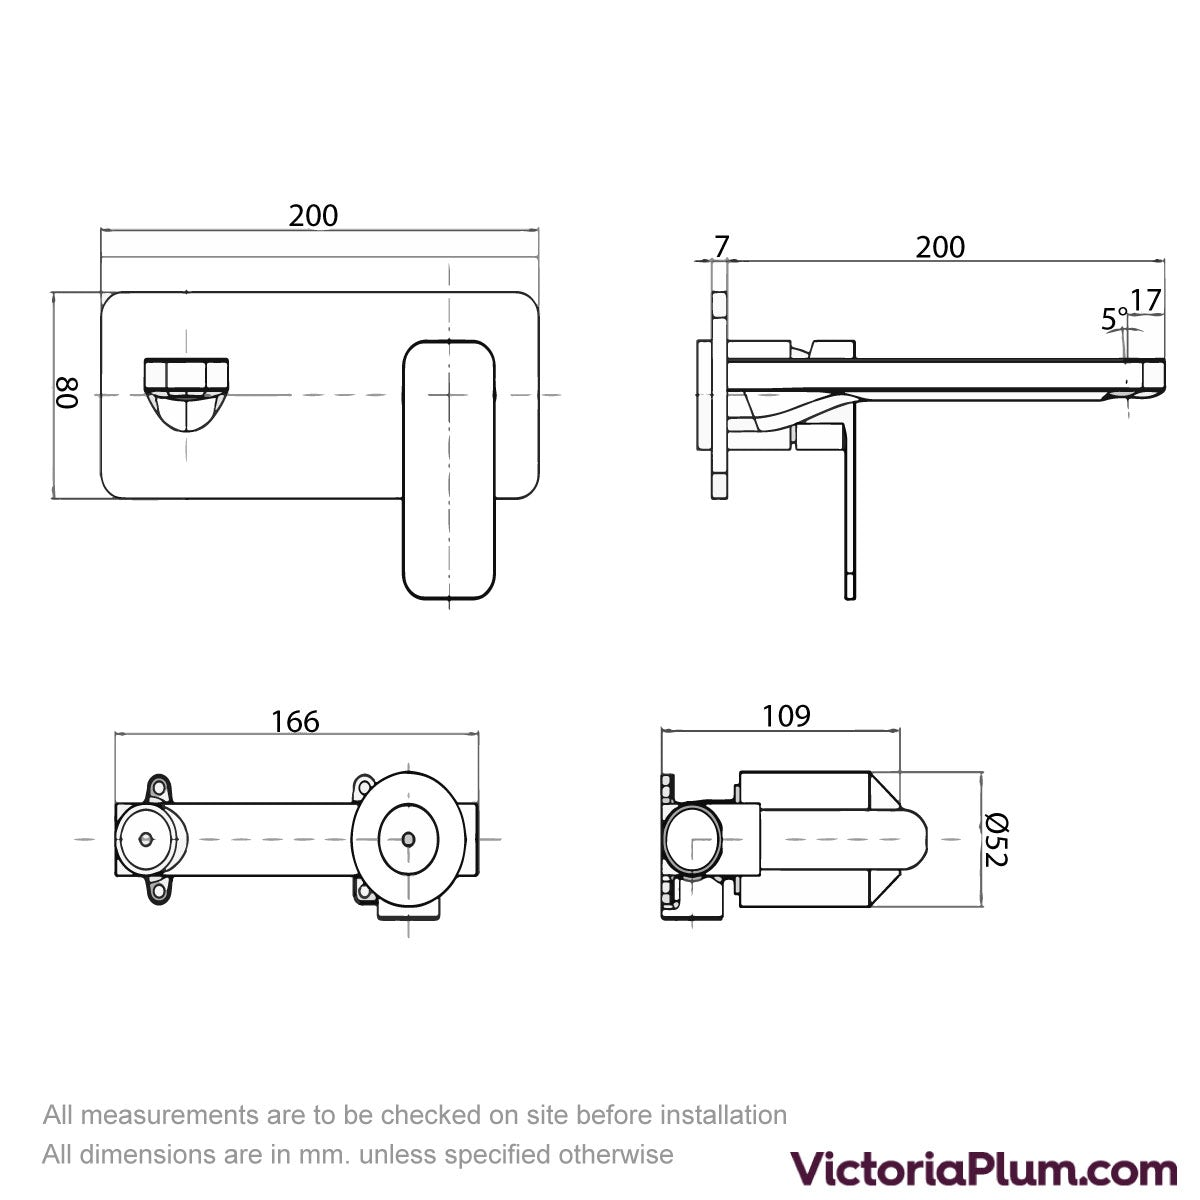 Dimensions for Mode Spencer square wall mounted gold basin mixer tap